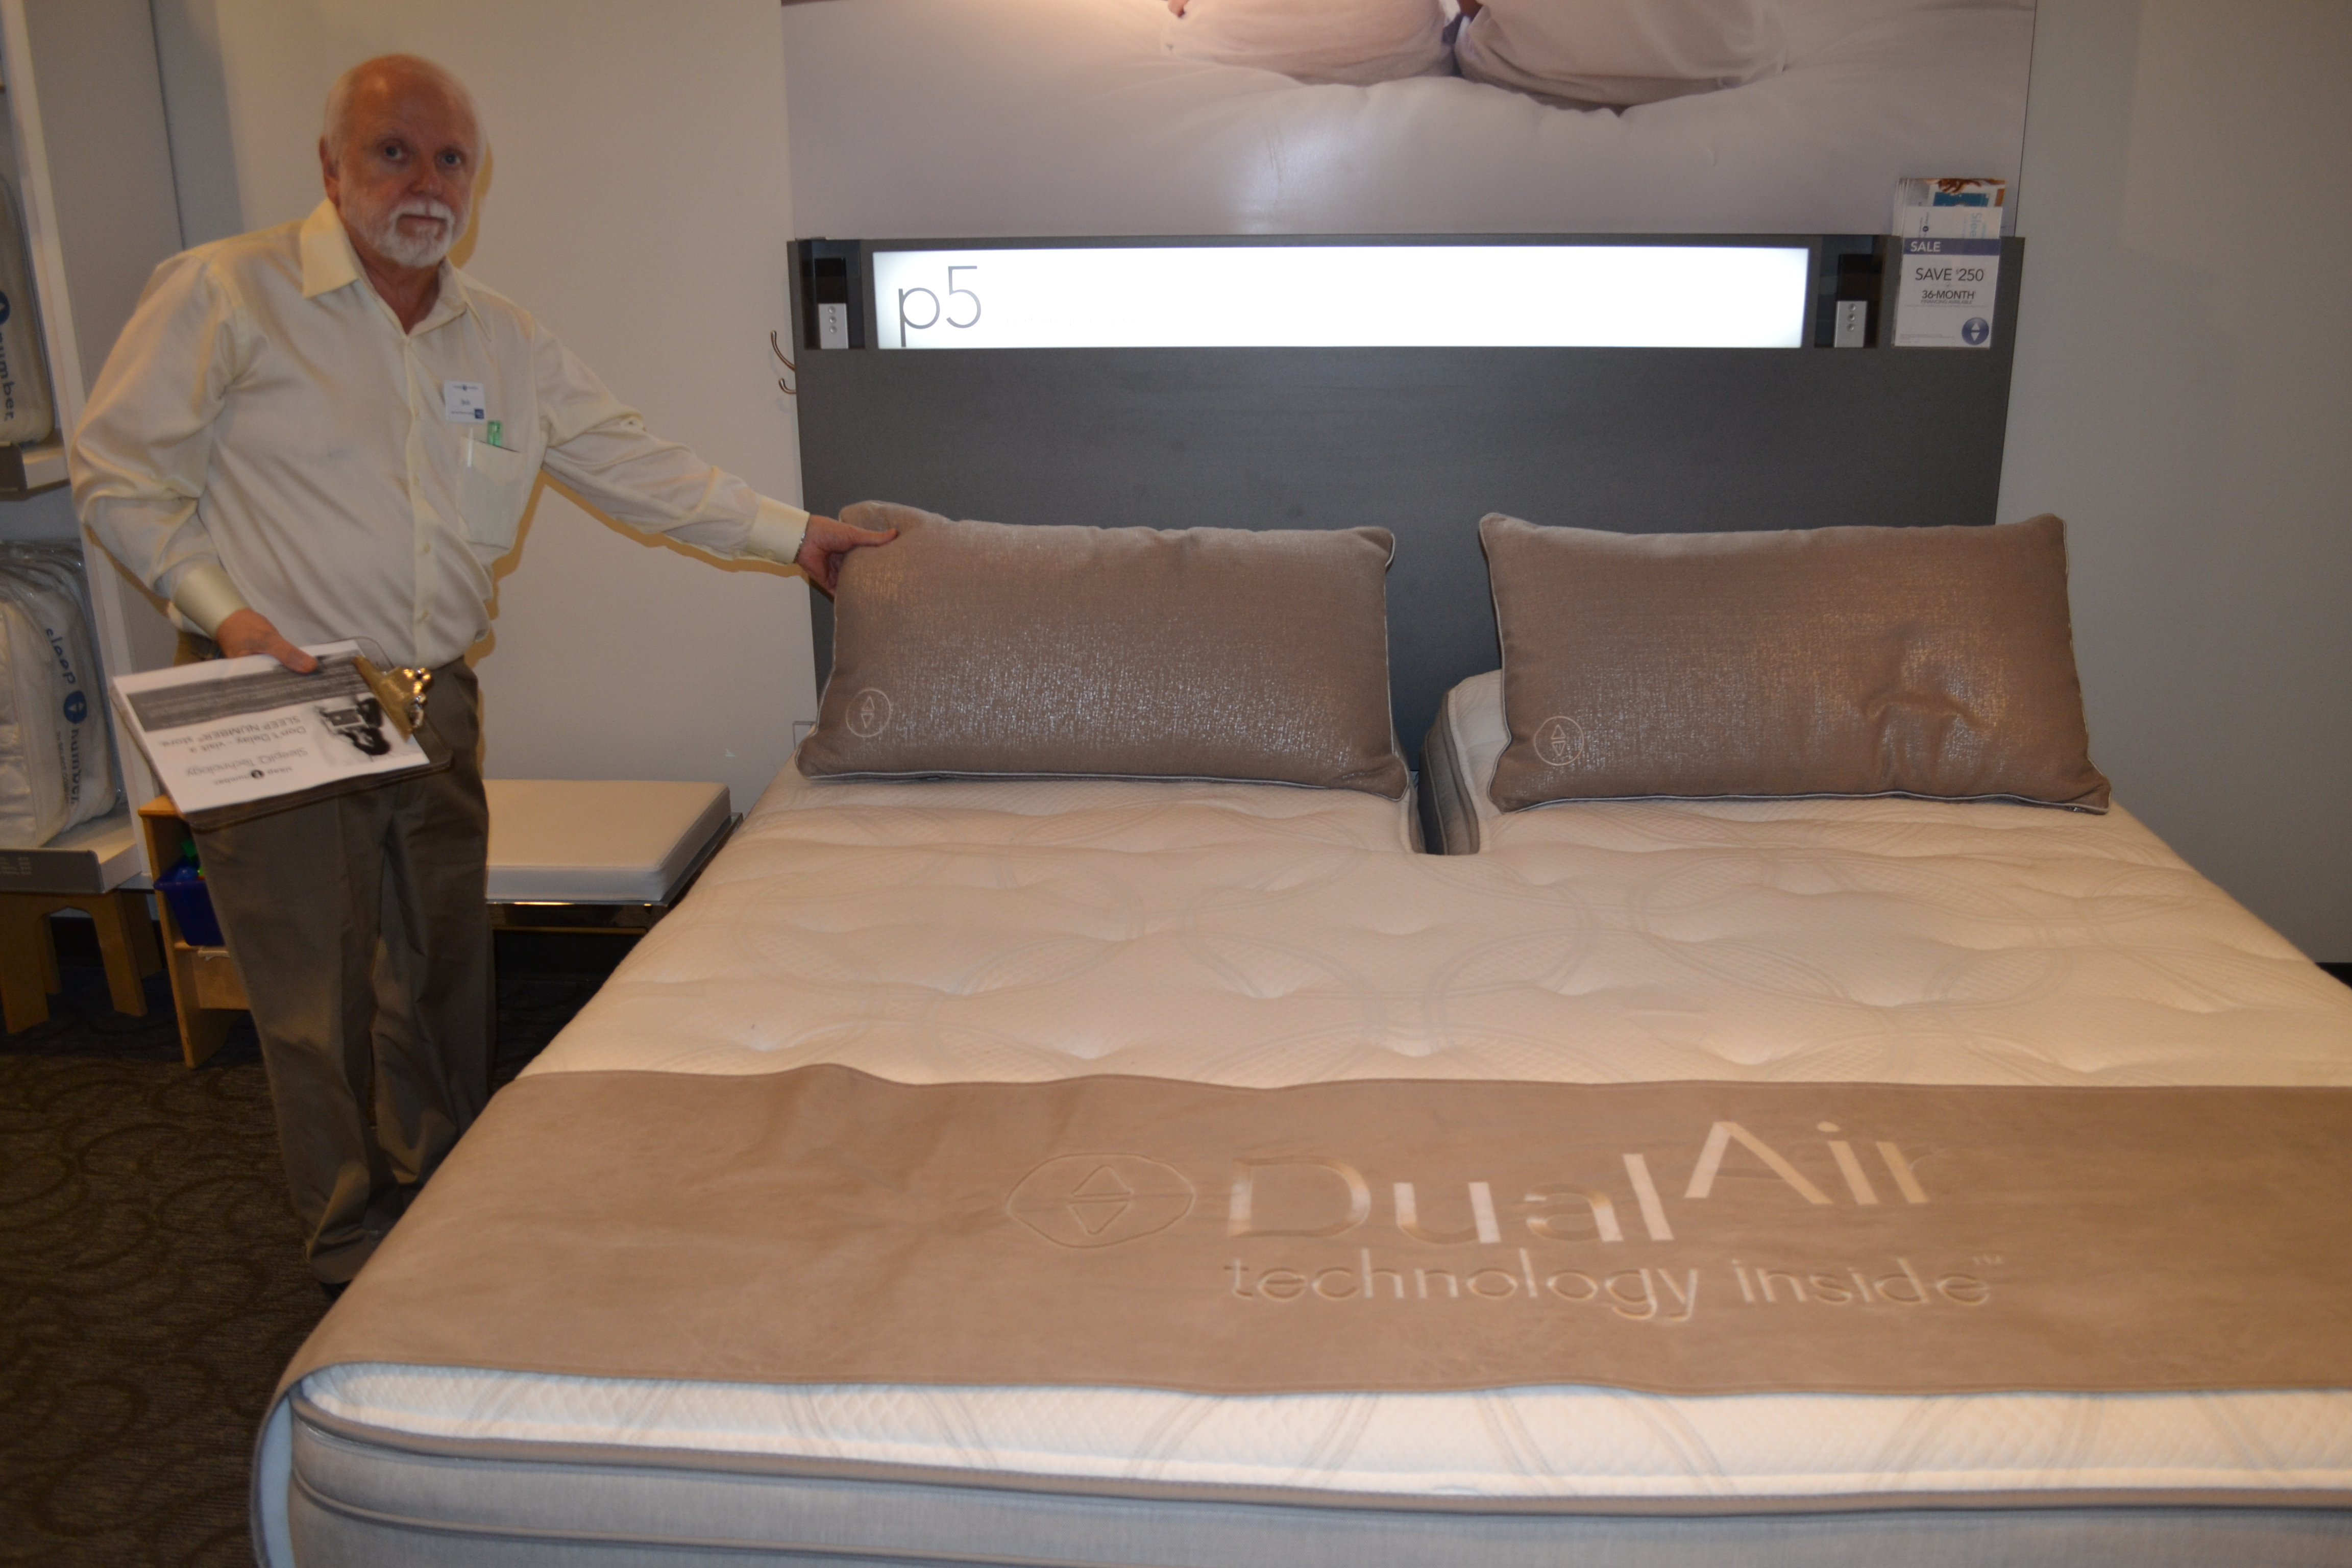 the third bed was the consumers choice personally i did not like the consumer choice bed although as i tried each bed on my sleep number the first one was